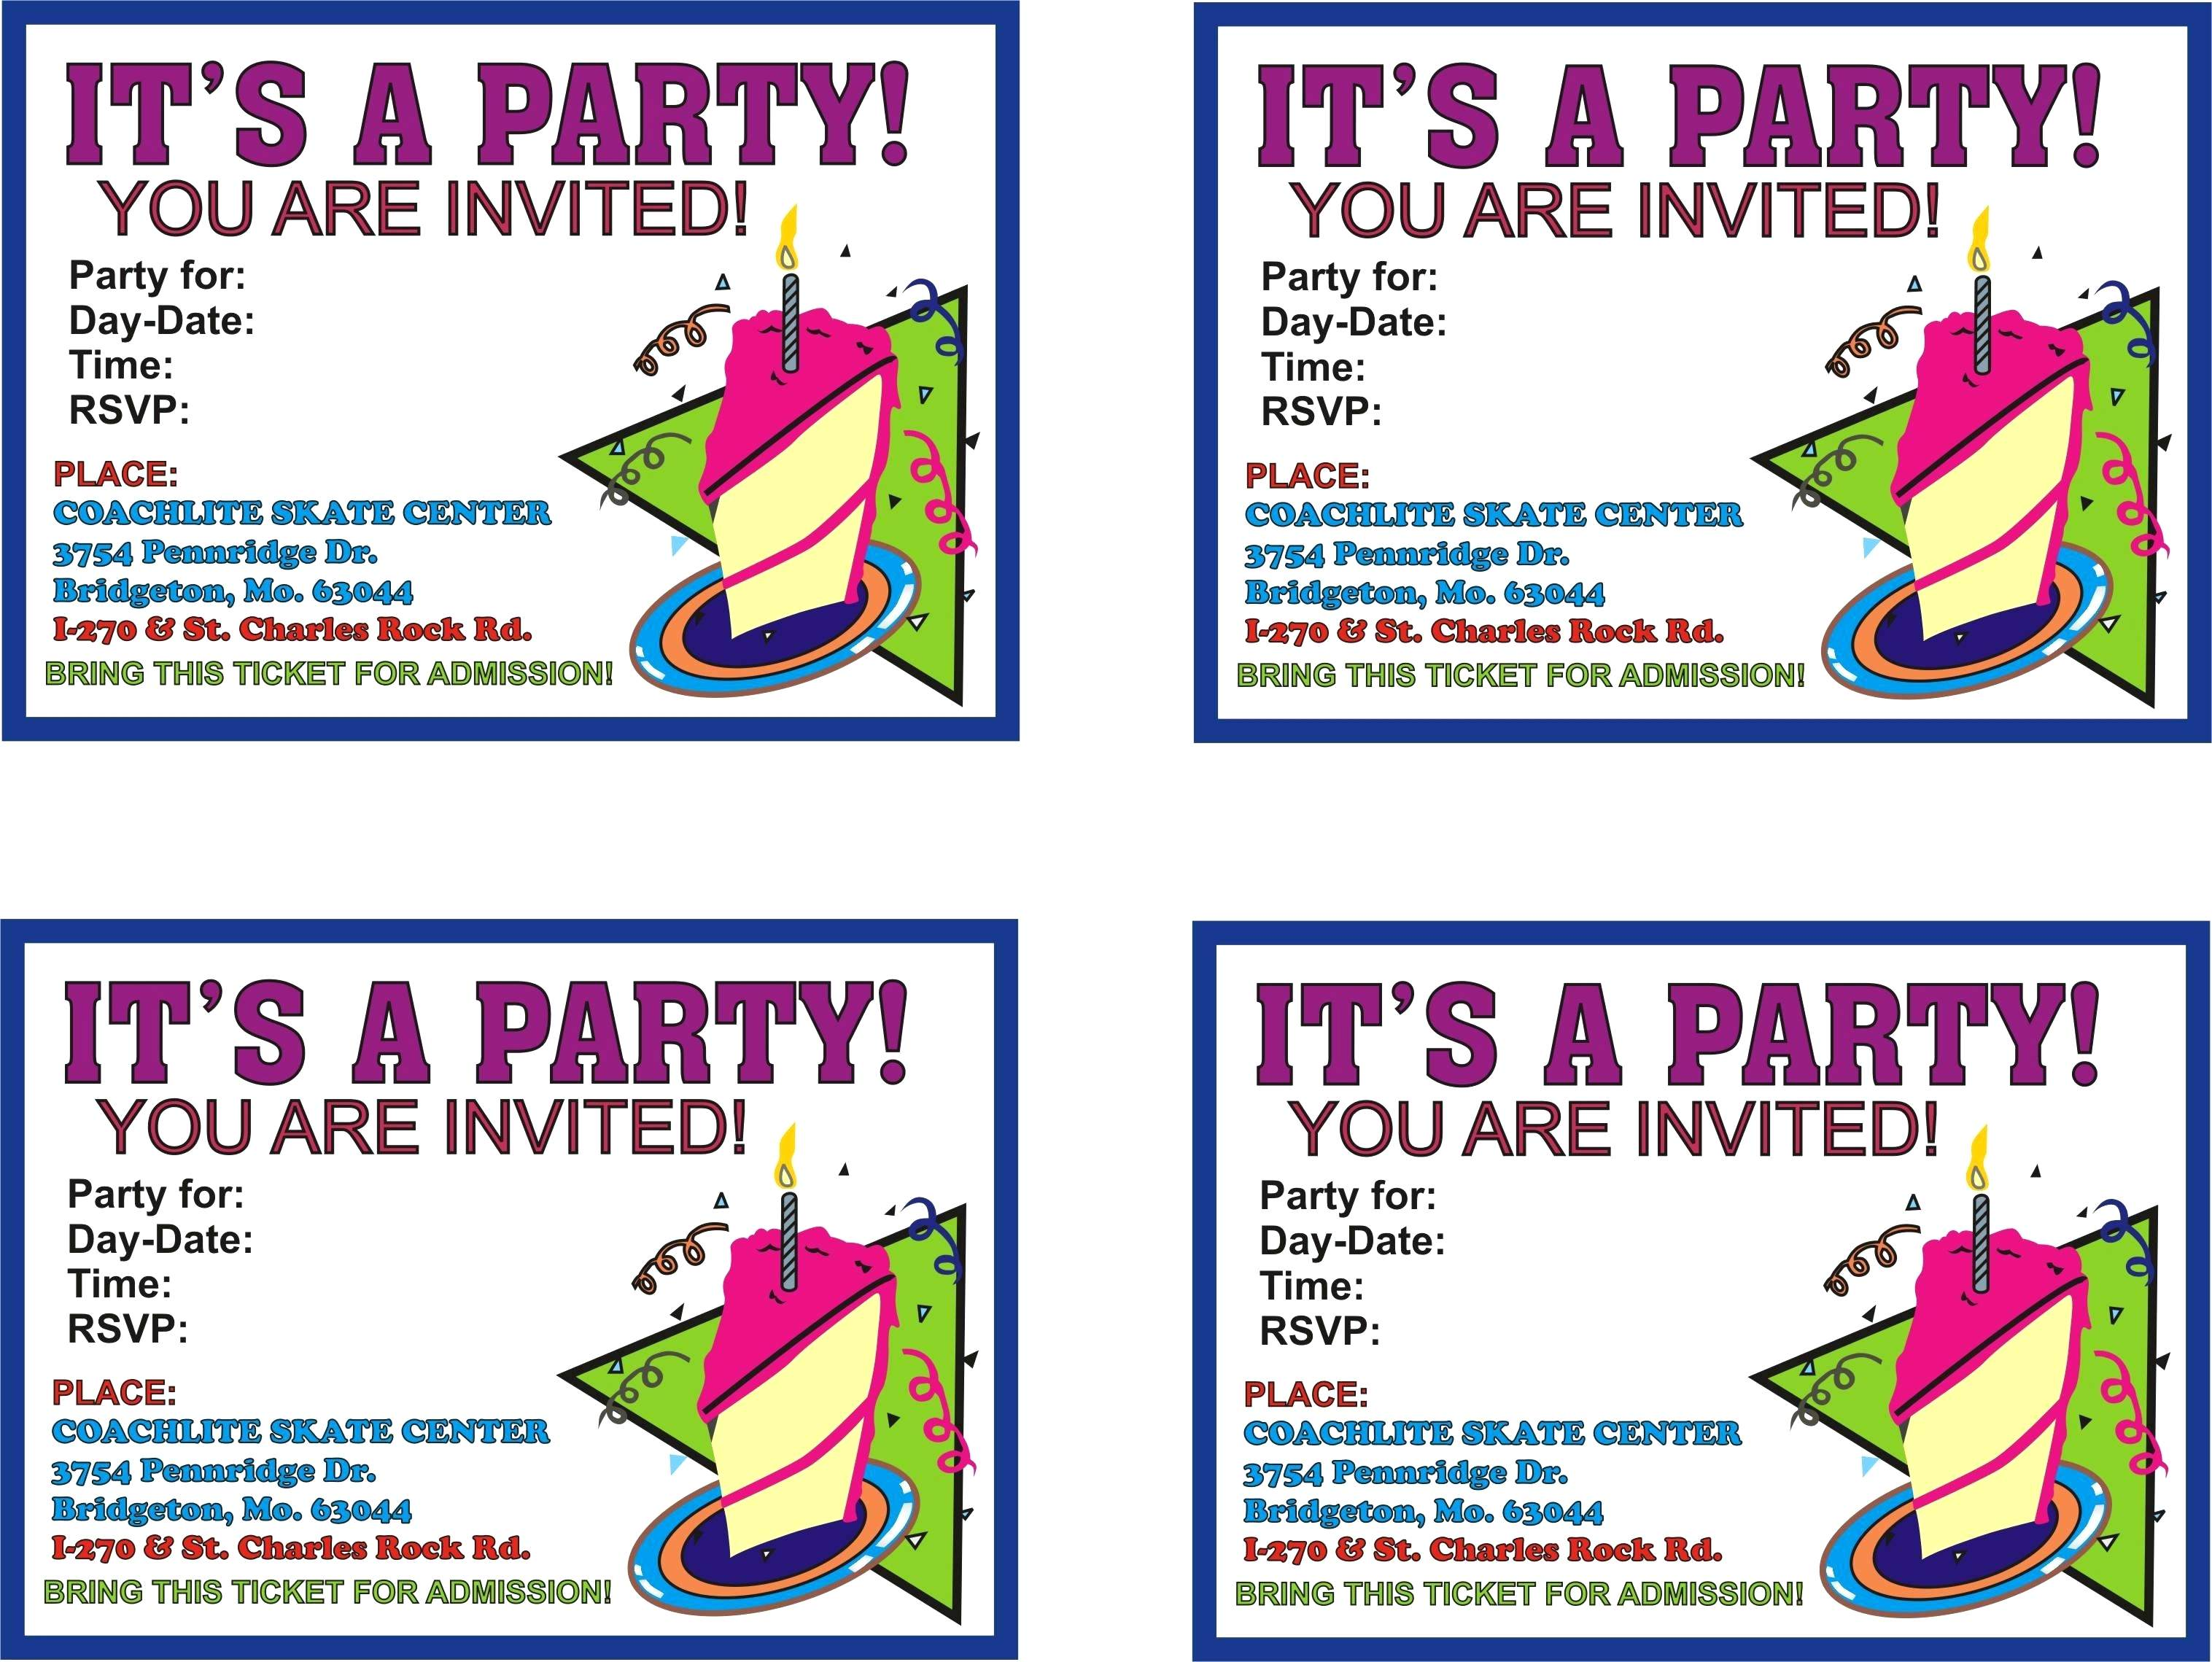 birthday poster template word ; birthday-party-invitation-flyer-template-free-invitations-templates-for-kids-printable-baseball-40th-word